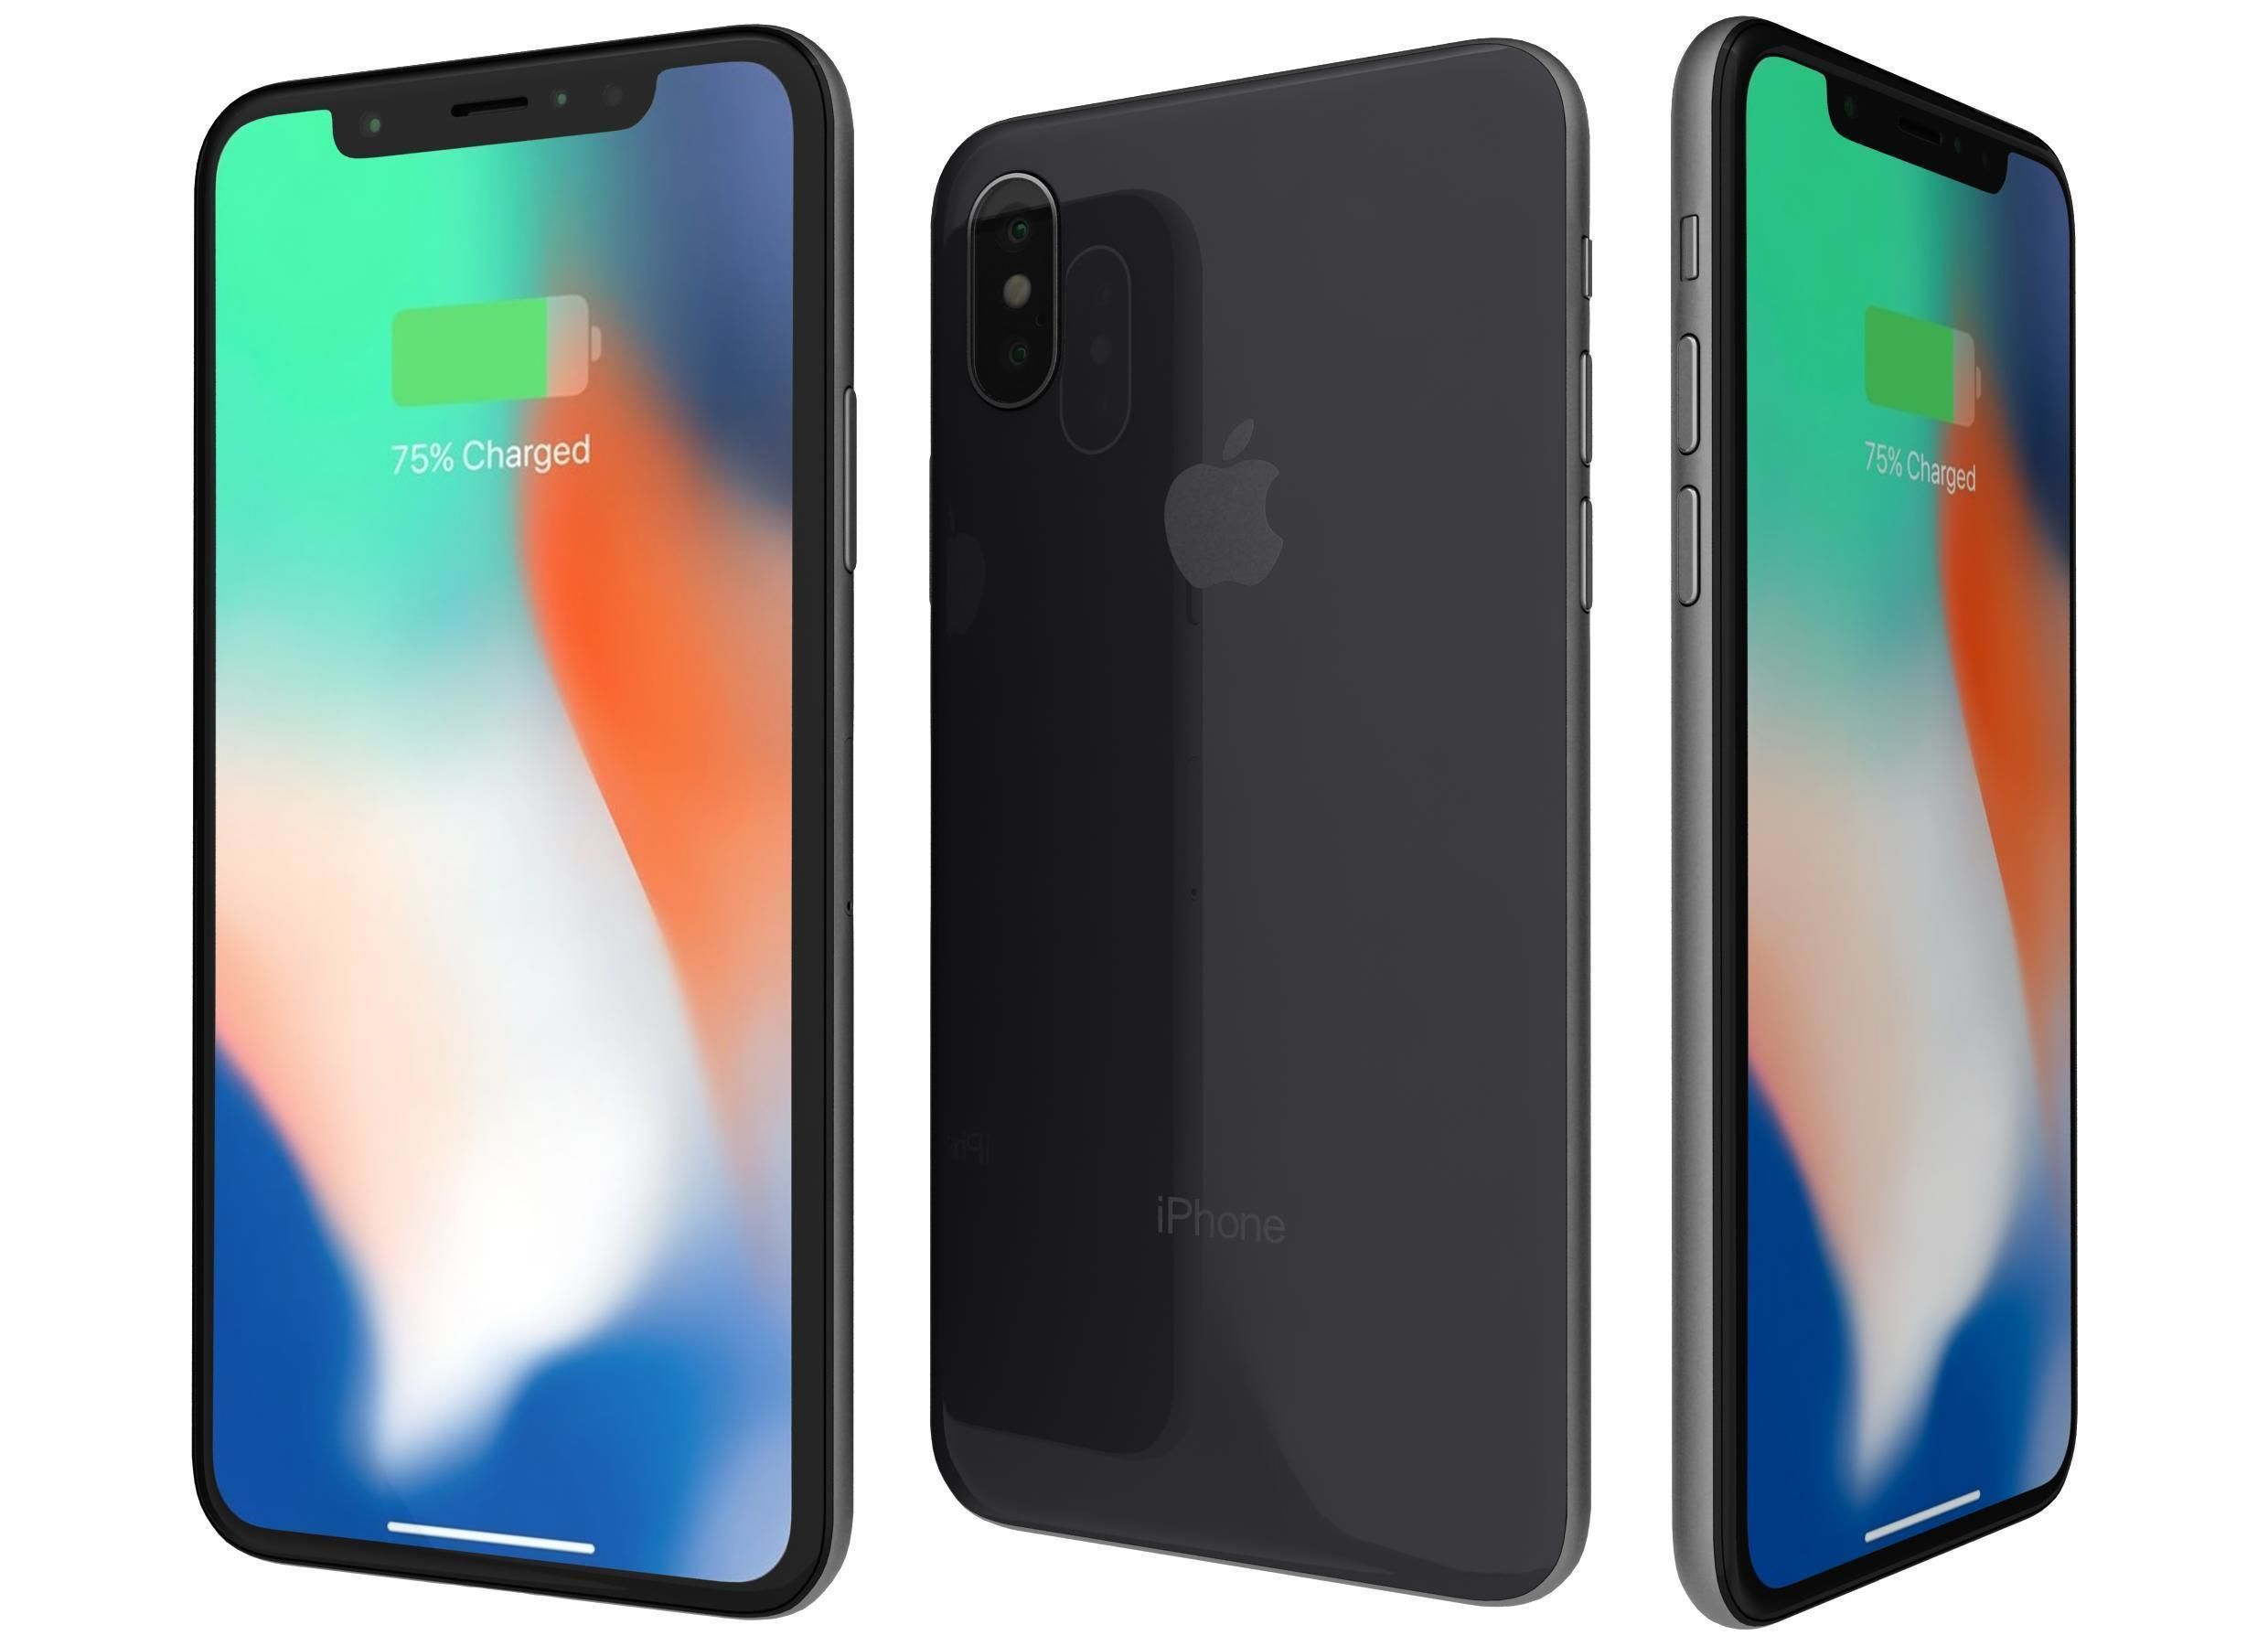 c7510bf0018b52 3D model Apple iPhone X Space Gray | CGTrader